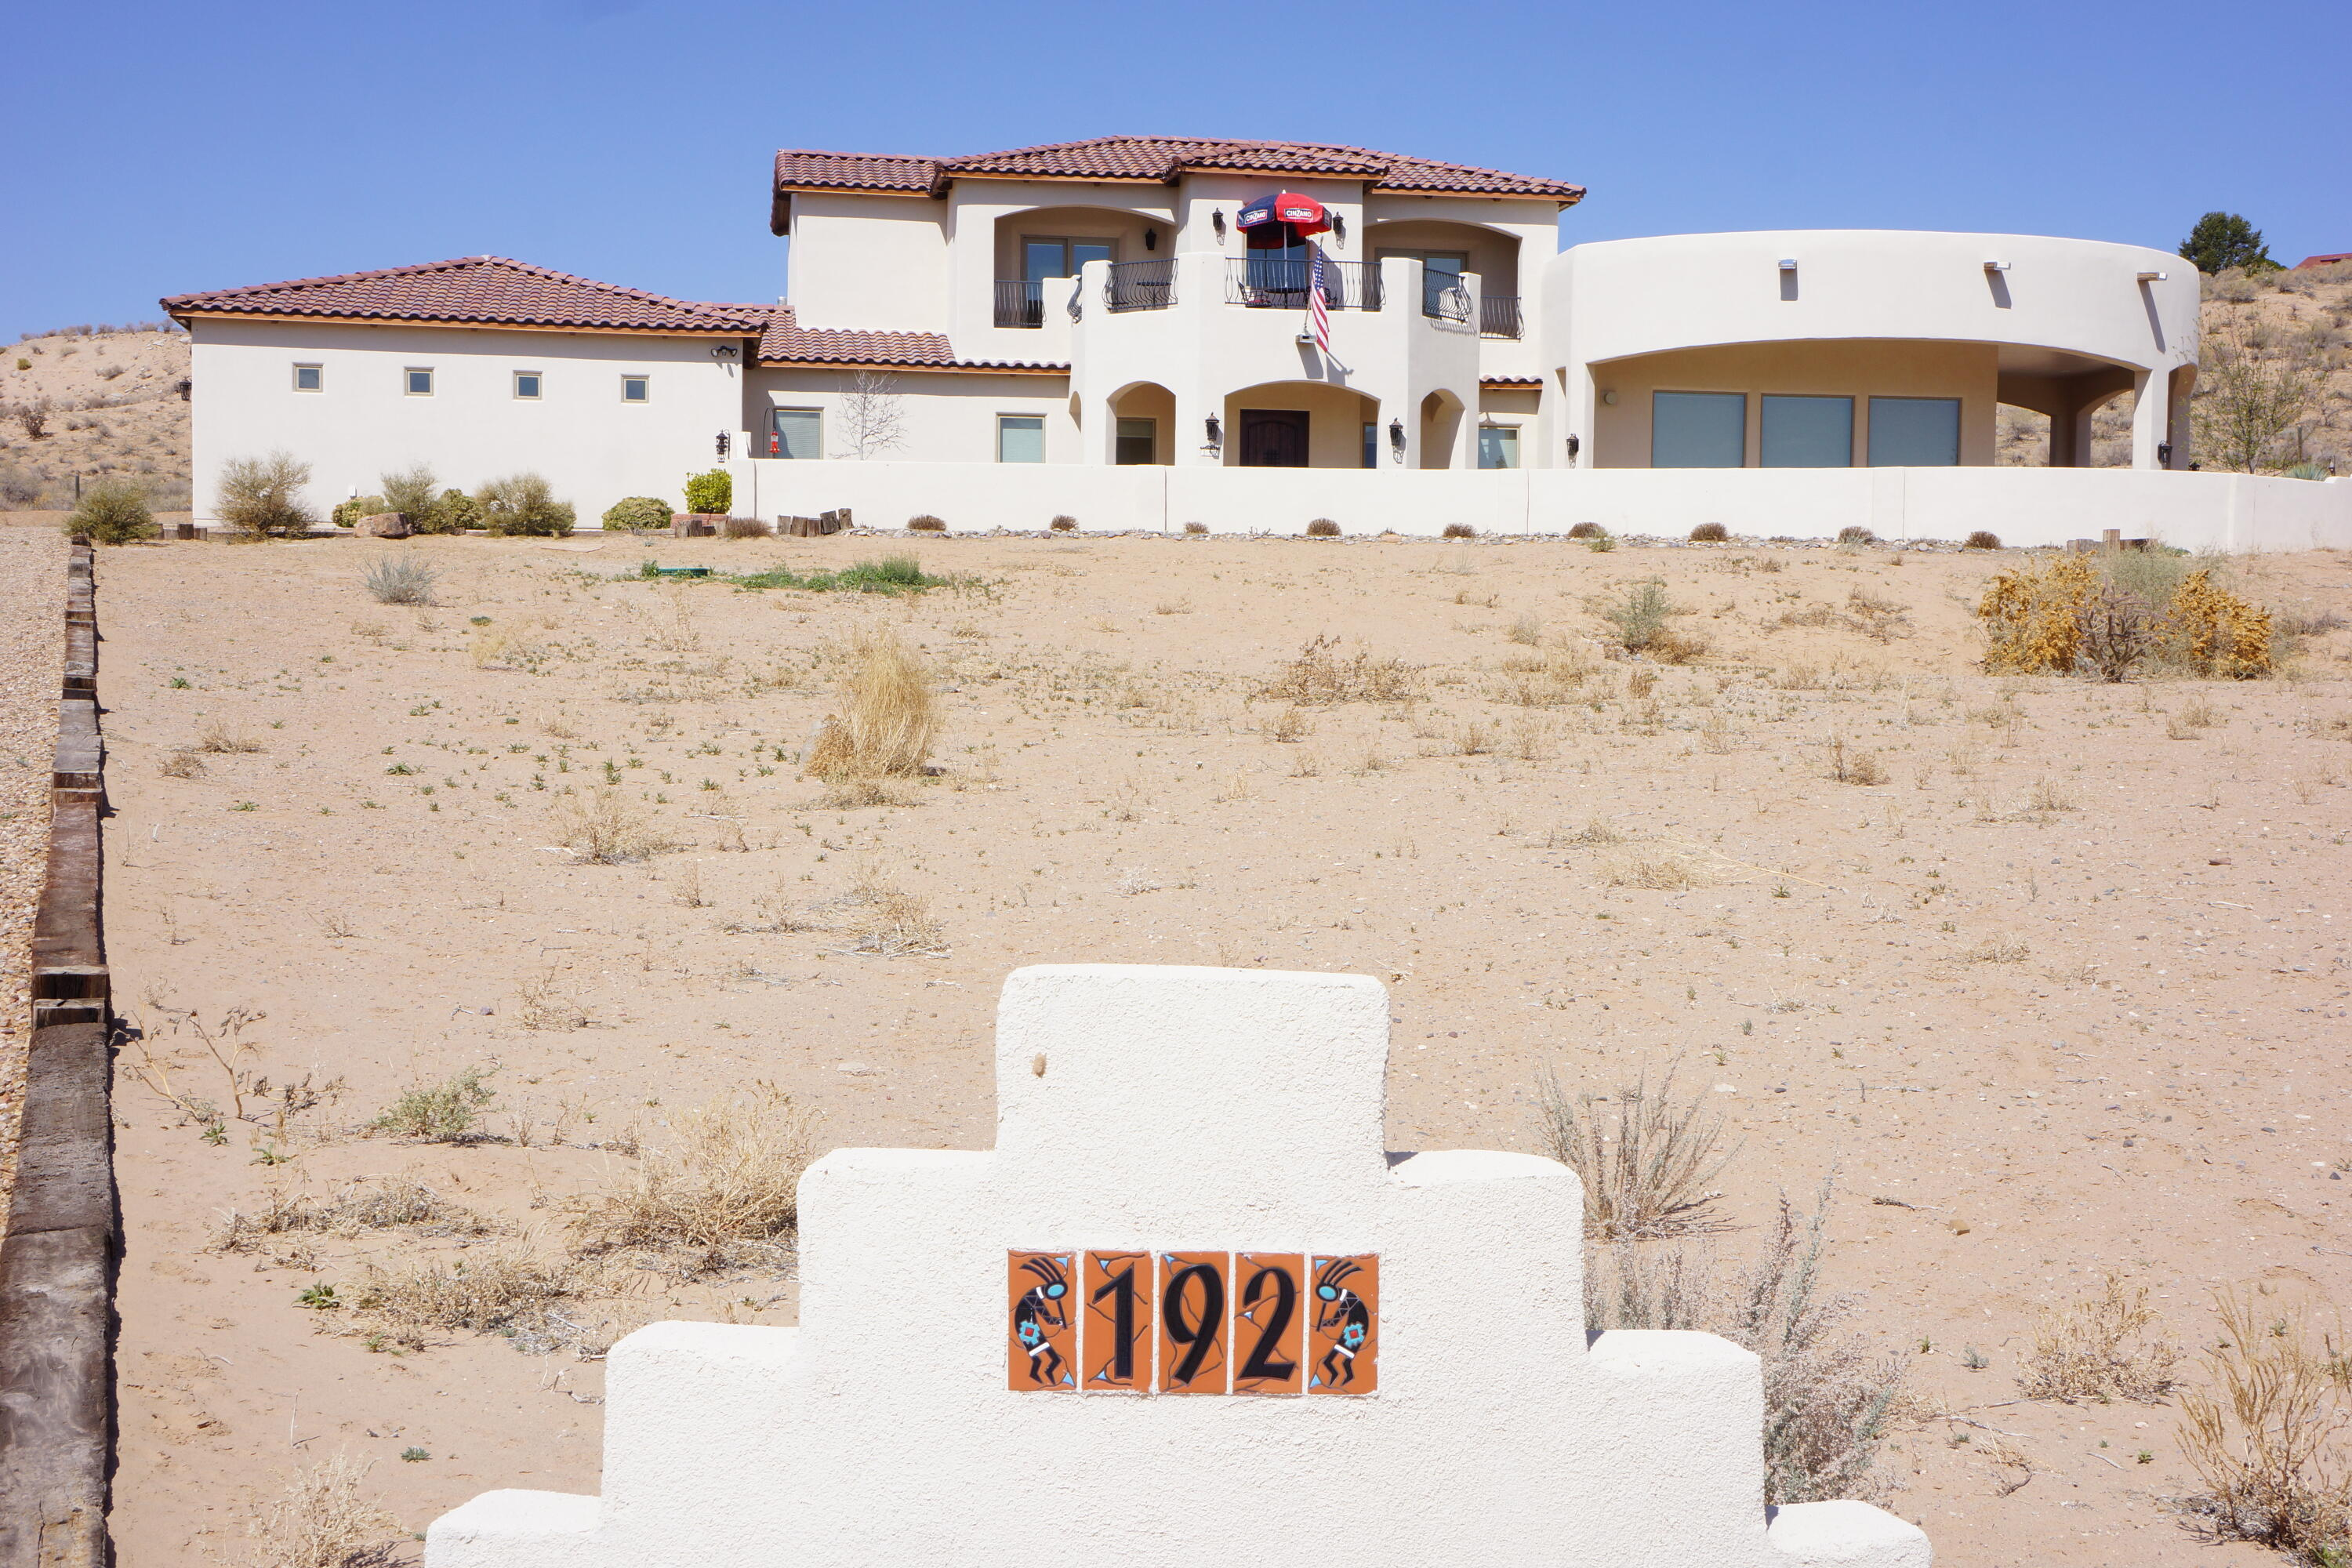 Views! Forever unobstructed views of mts., north valley, bosque, balloon fiesta, etc. from this Corrales home. This 3460 square foot custom built home is on .97 acres and has three bedrooms, 3 1/2 baths, an upstairs Study/Library with wet bar. The flex room near the Master BR currently used as a gym would make a great nursery with plenty of natural light and access to the back yard. Completely landscaped walled-in front and rear yards. Oversized 3 car garage with attached workshop. Enjoy the central air and radiant heat throughout. Pella windows and exterior doors. Custom Alder cabinets and SS Jenn-Air appliances including a built in refrigerator. Large laundry room with custom cabinets and room for a second refrigerator. Gas fireplace for cold evenings. A rare find that won't last long.